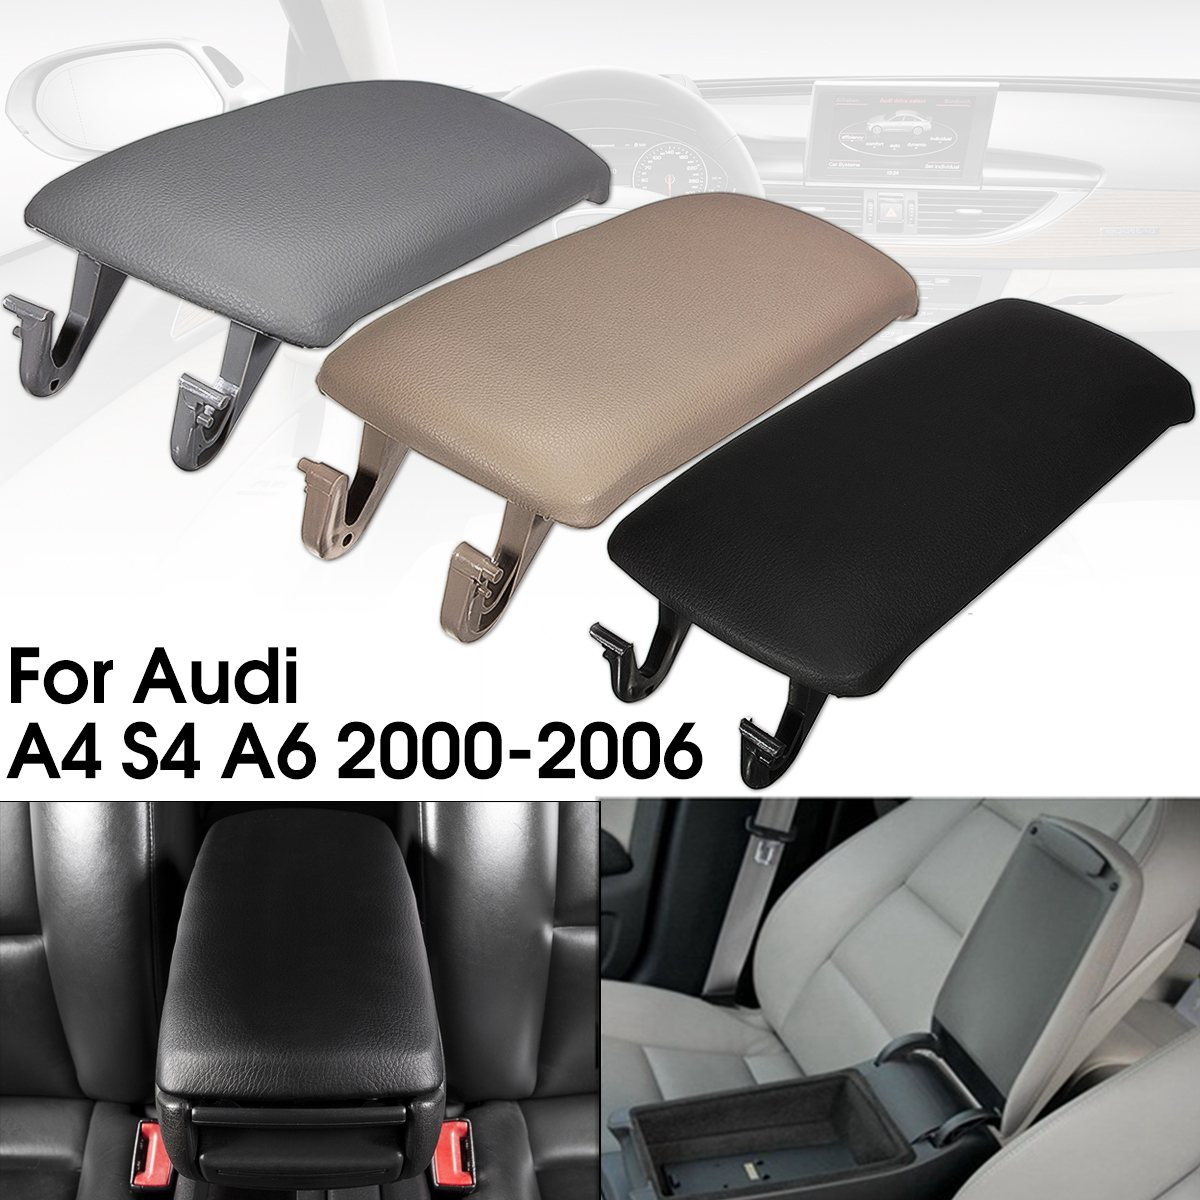 1PC Auto Car Leather Armrest Cover + Center Console Lid Cover For Audi A4 S4 A6 2000 2001 2002 2003 2004 2005 2006 купить в Москве 2019